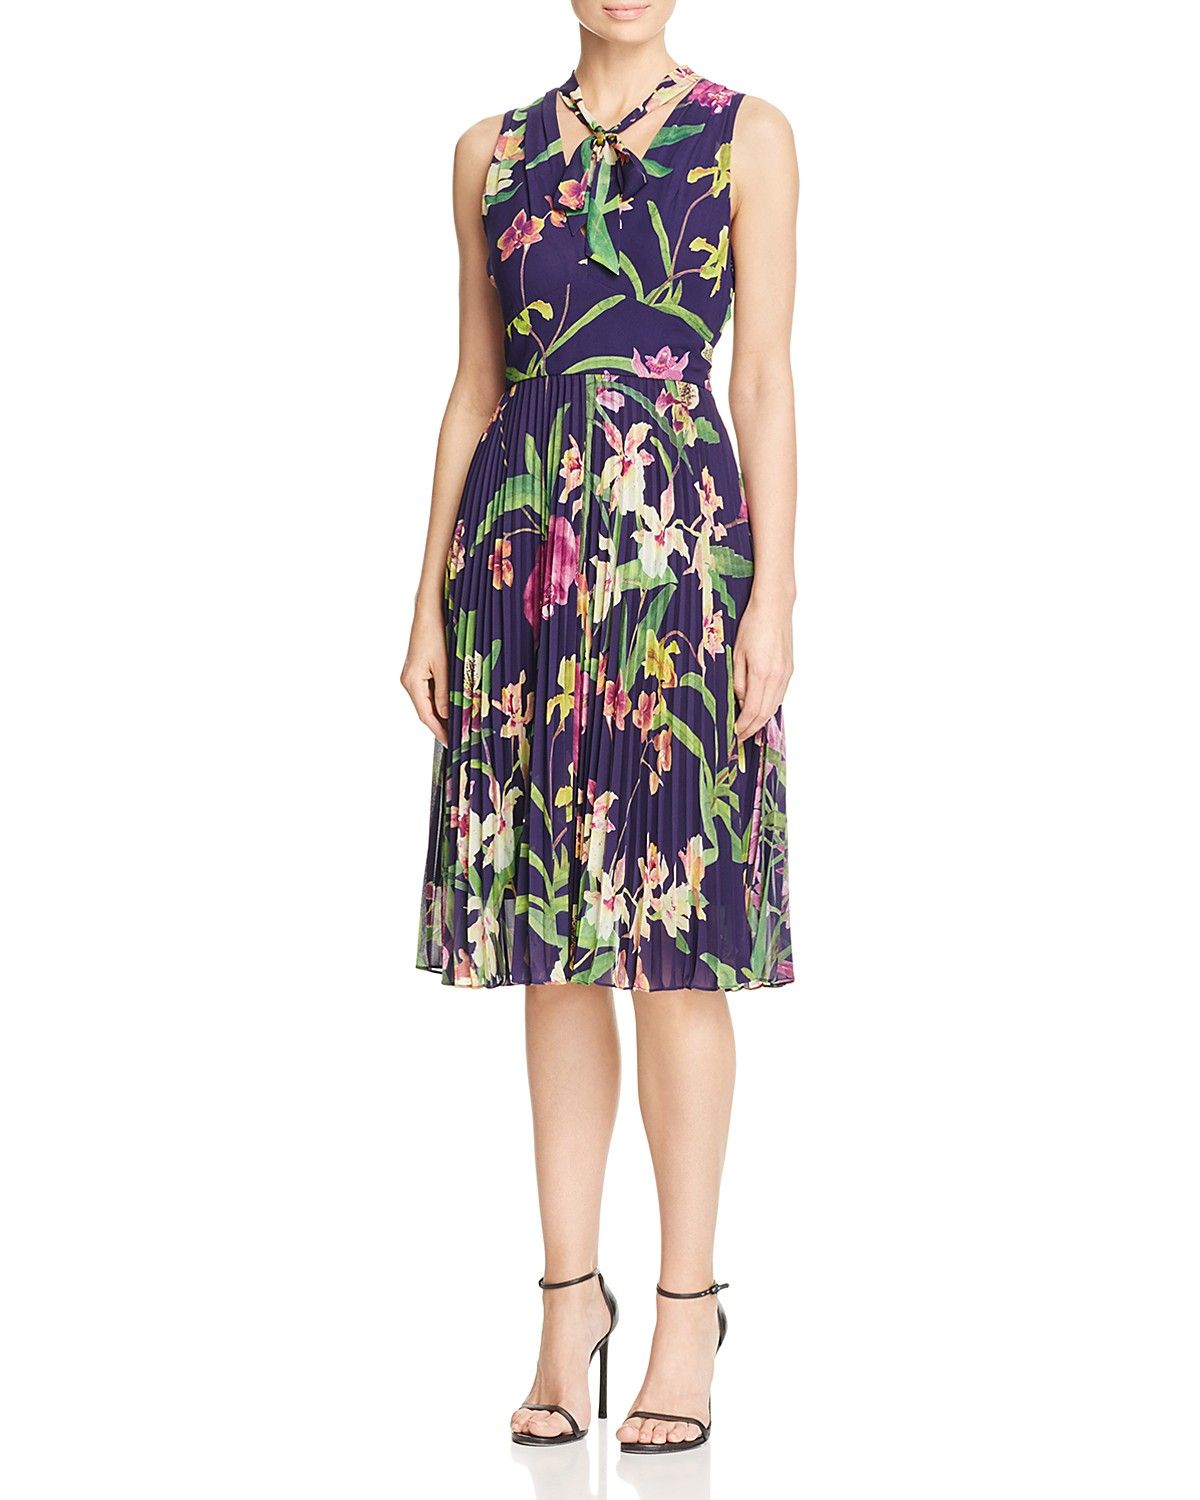 Karen millen atelier orchid print pleated dress long dresses